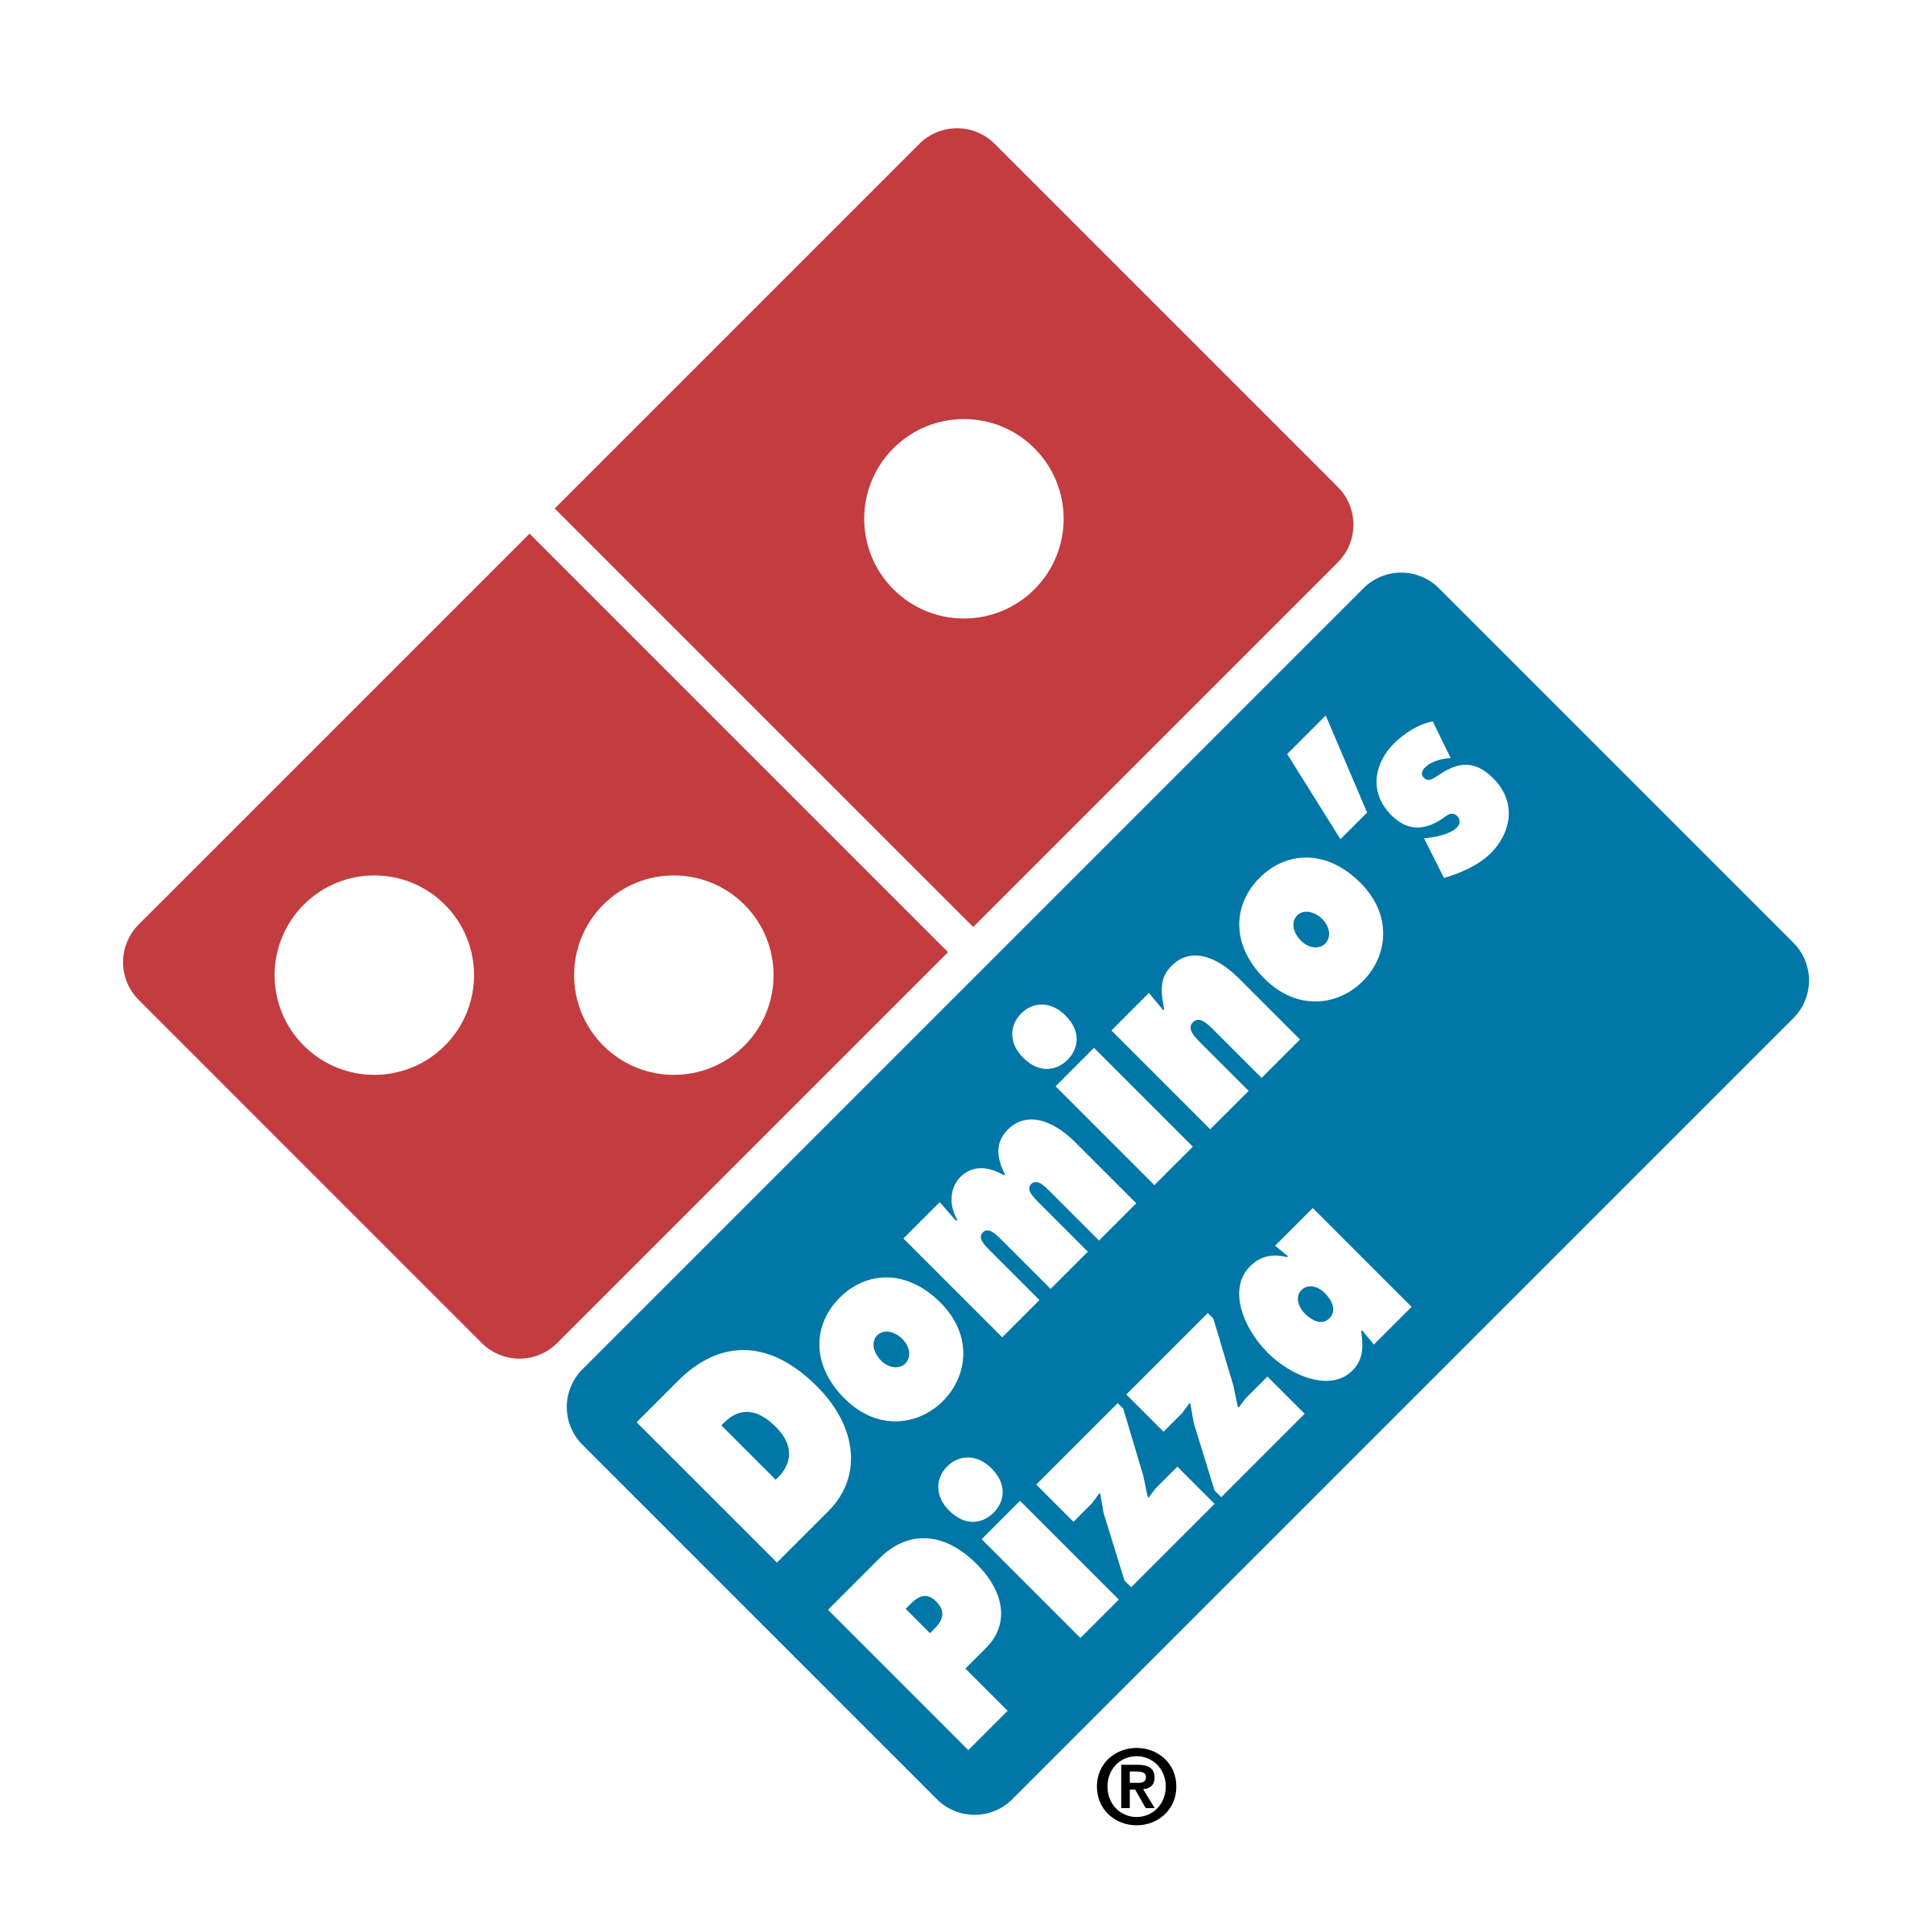 S pizza logo png. Domino clipart sketch